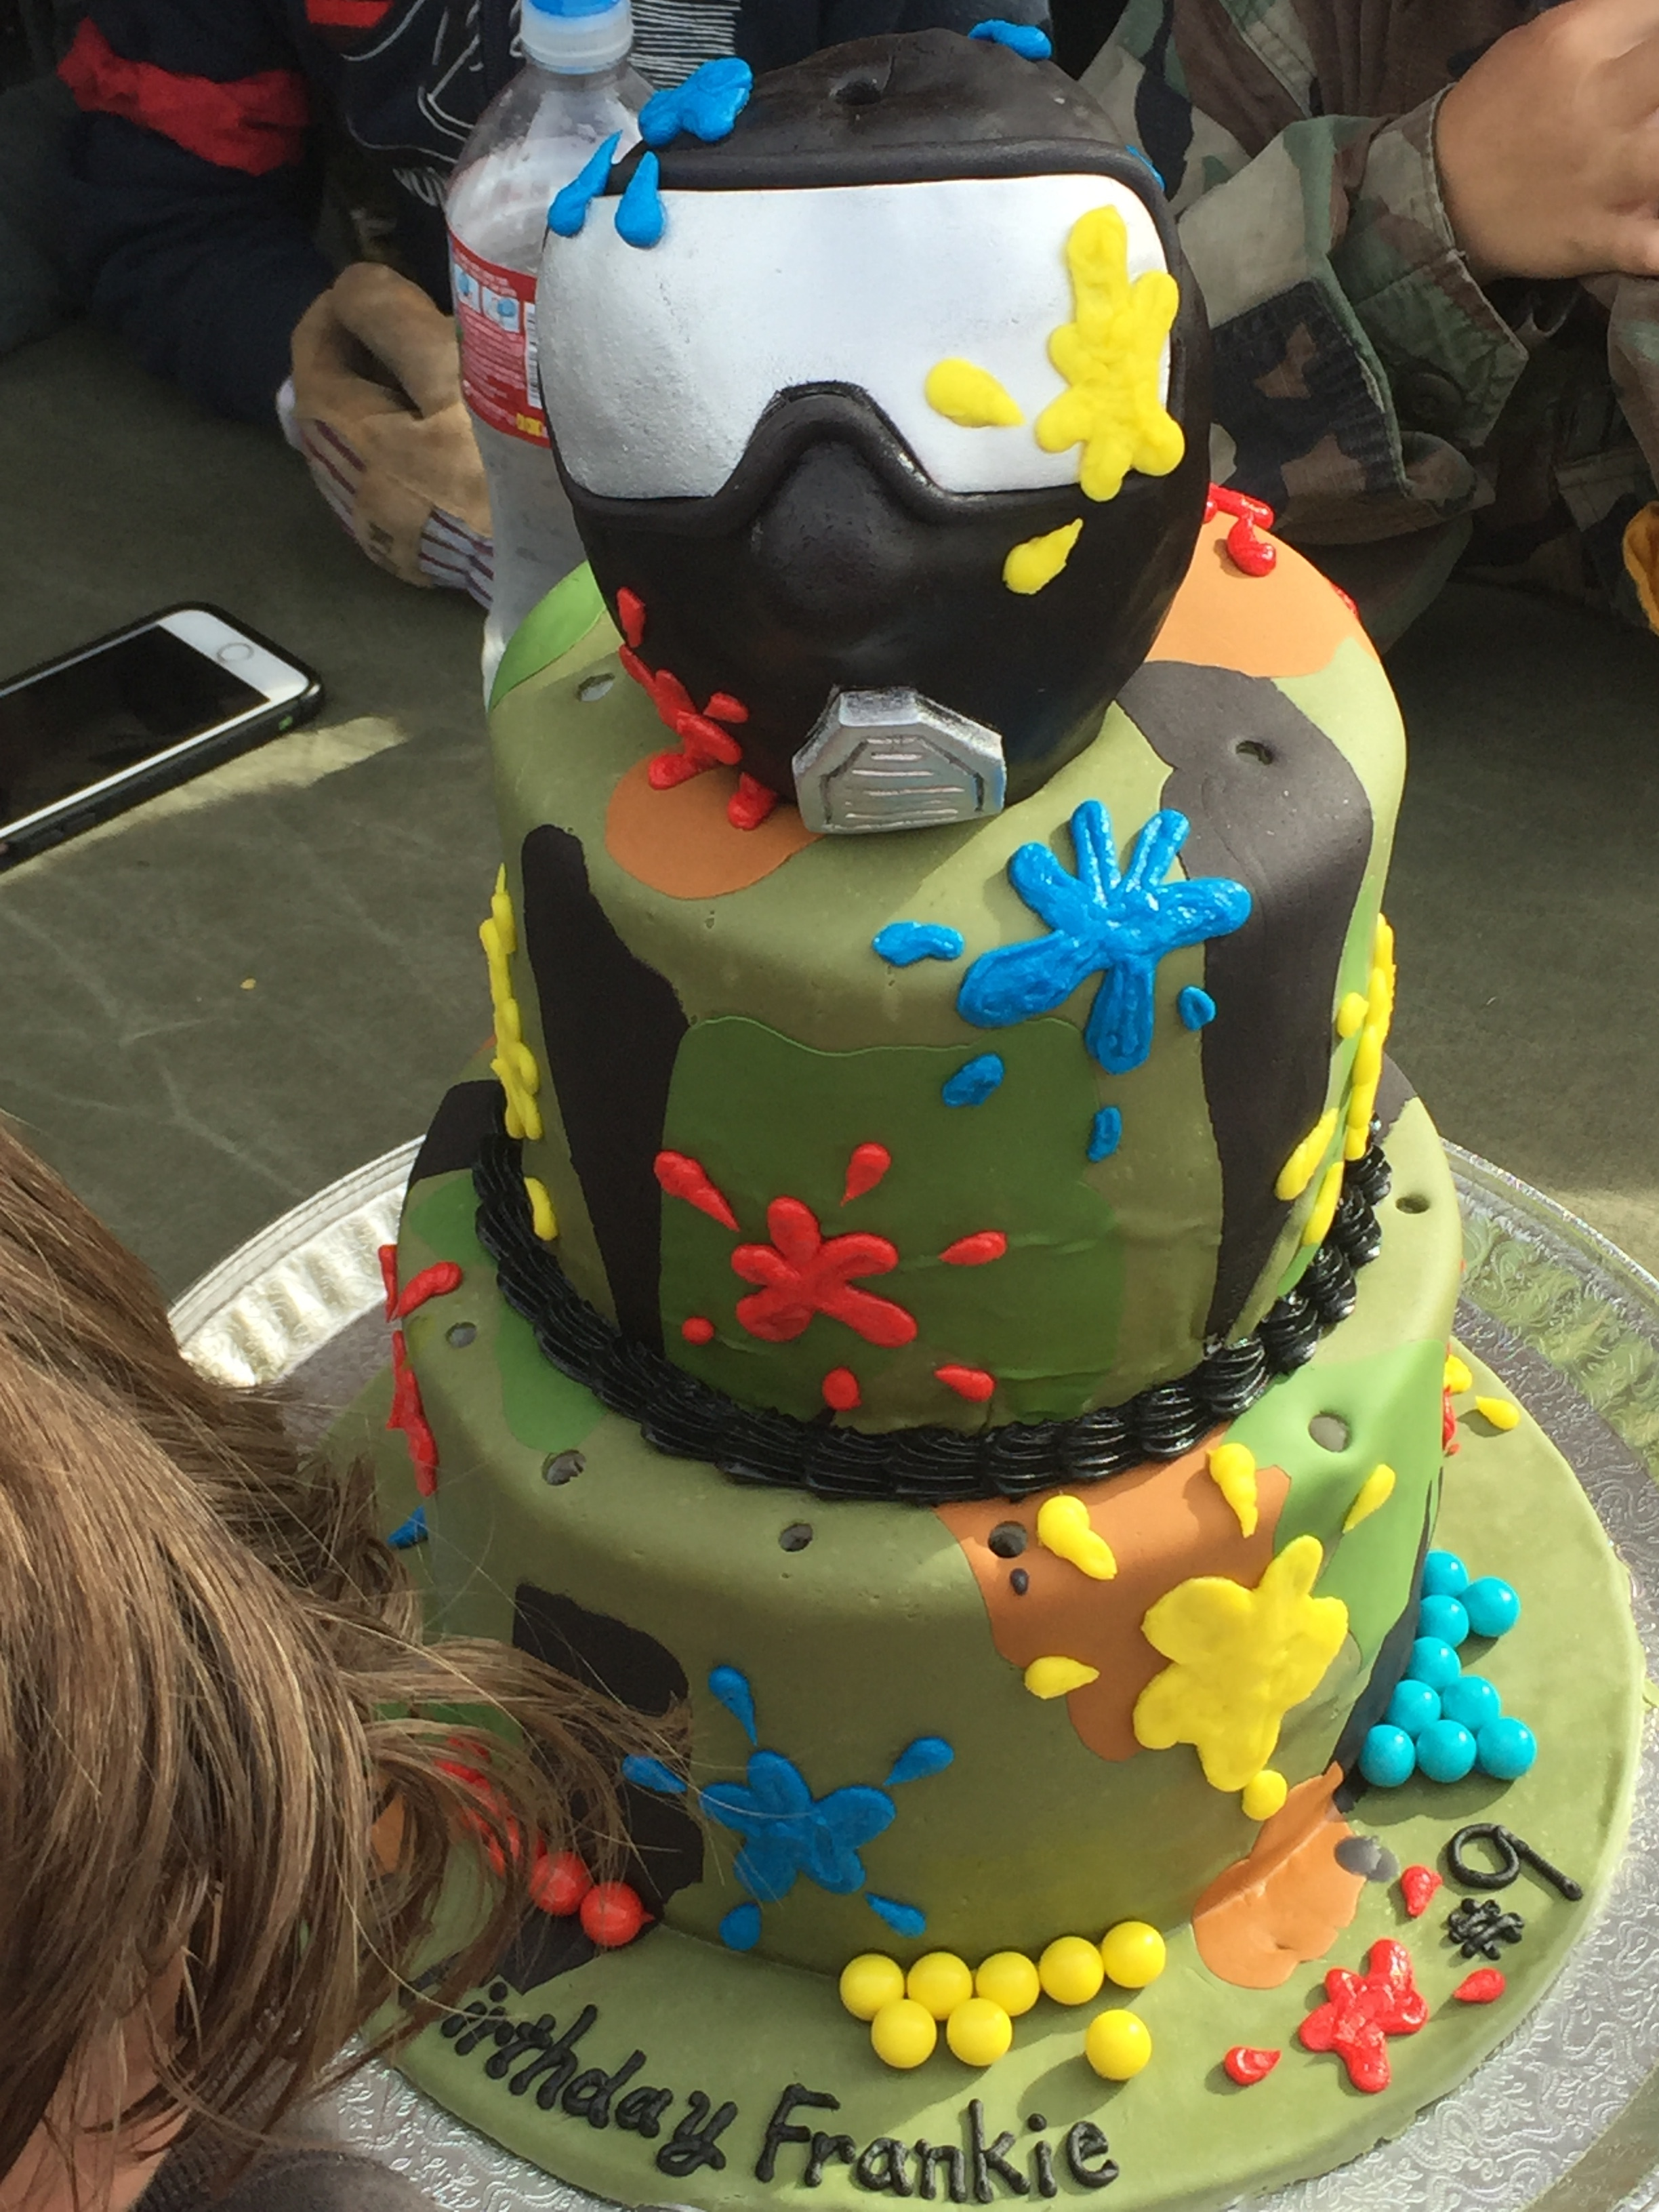 A very cool cake